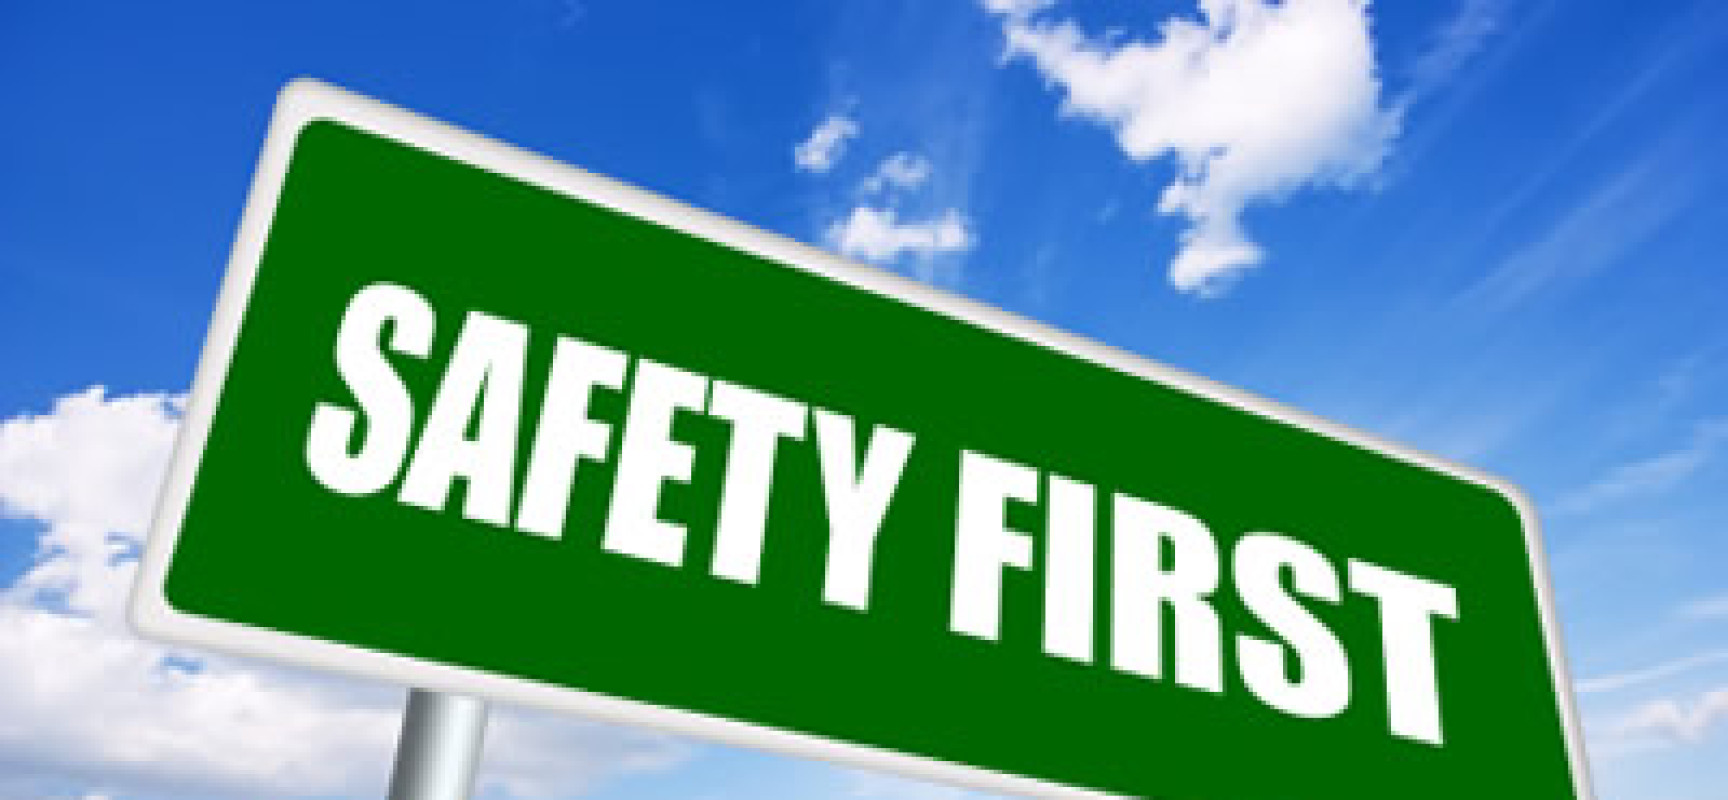 Top Tips for Health and Safety in the Workplace